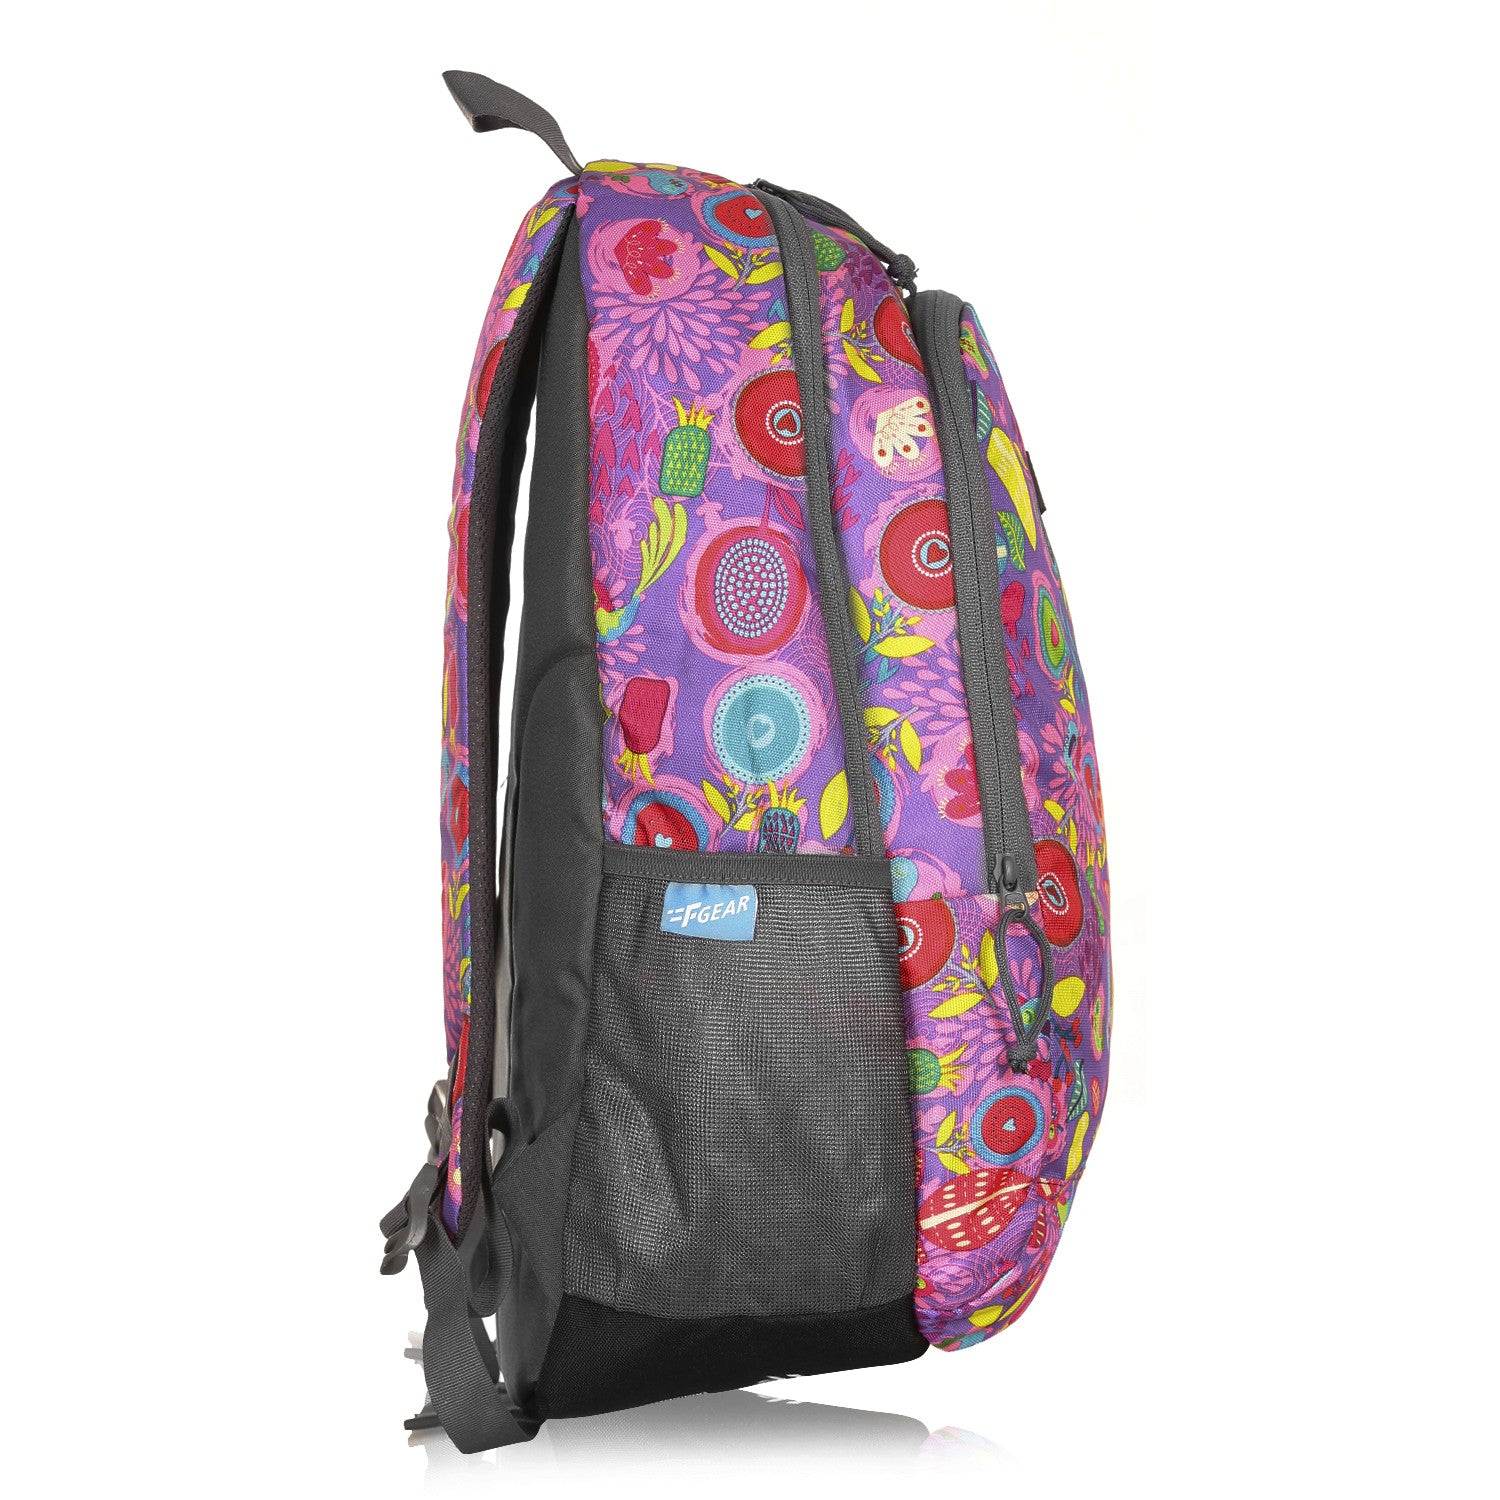 F Gear Castle Pine Pink Grey 22 L Polyester Backpack (3355)